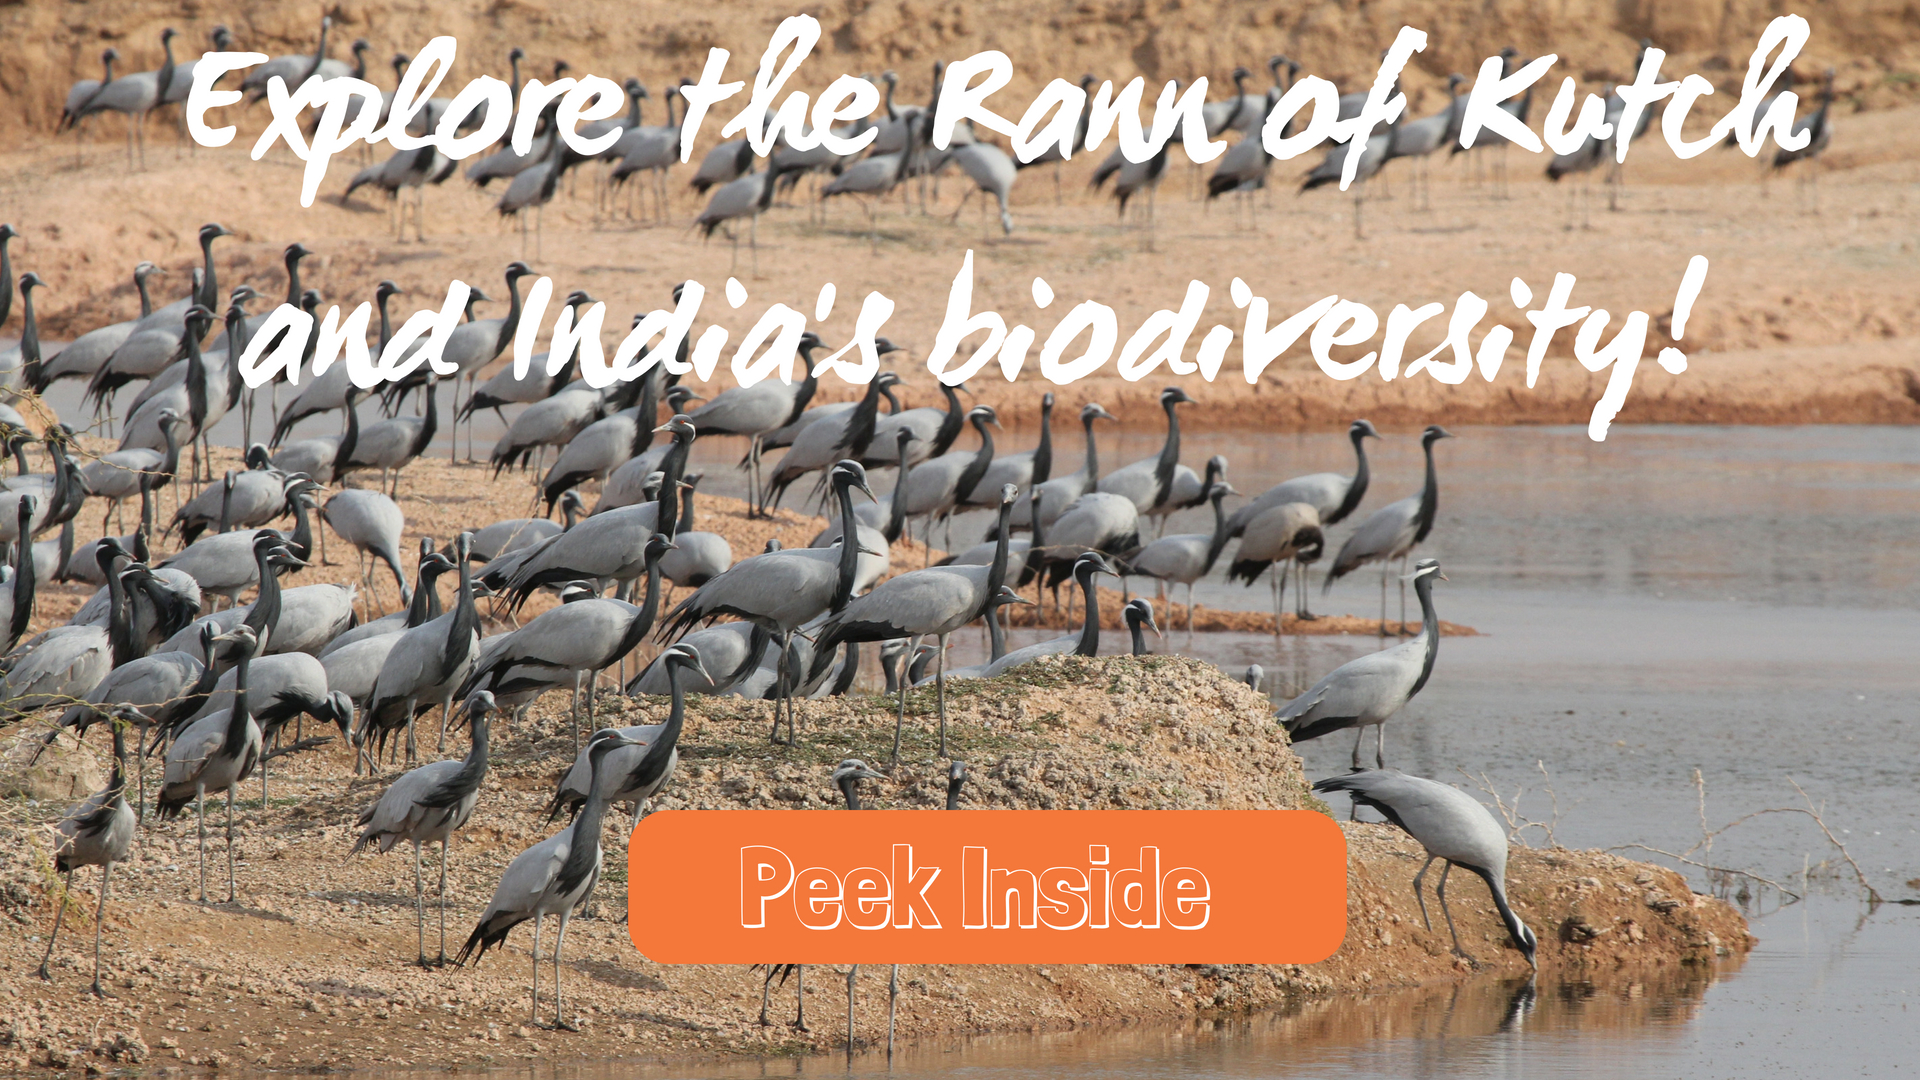 Demoiselle Cranes, the Rann of Kutch and India's Biodiversity